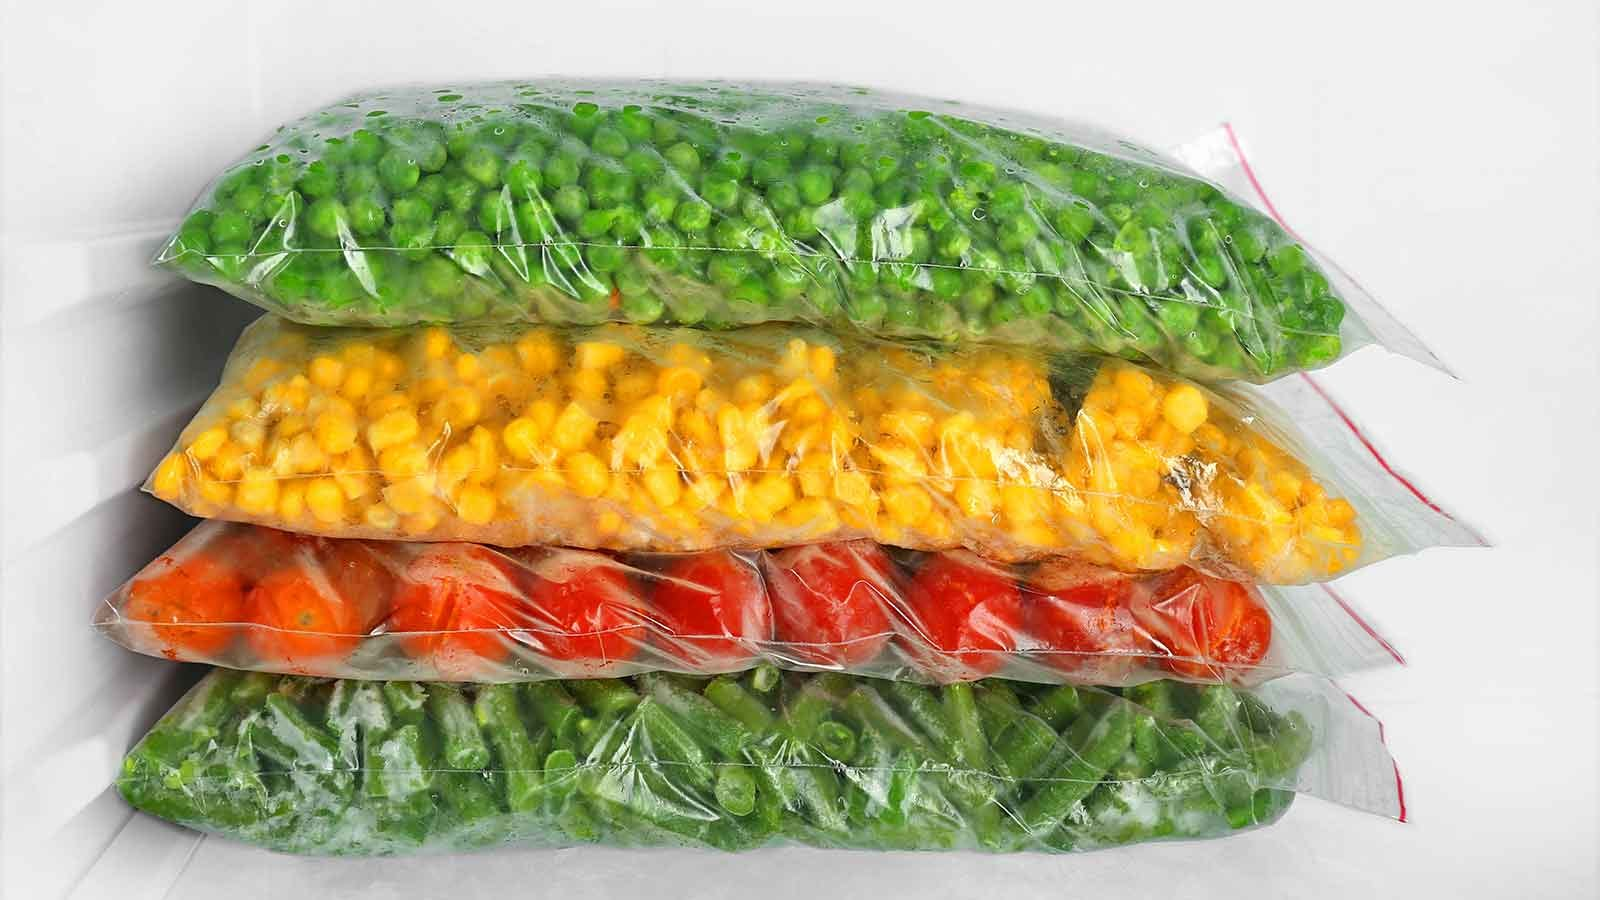 Stacked bags of frozen vegetables in a freezer.